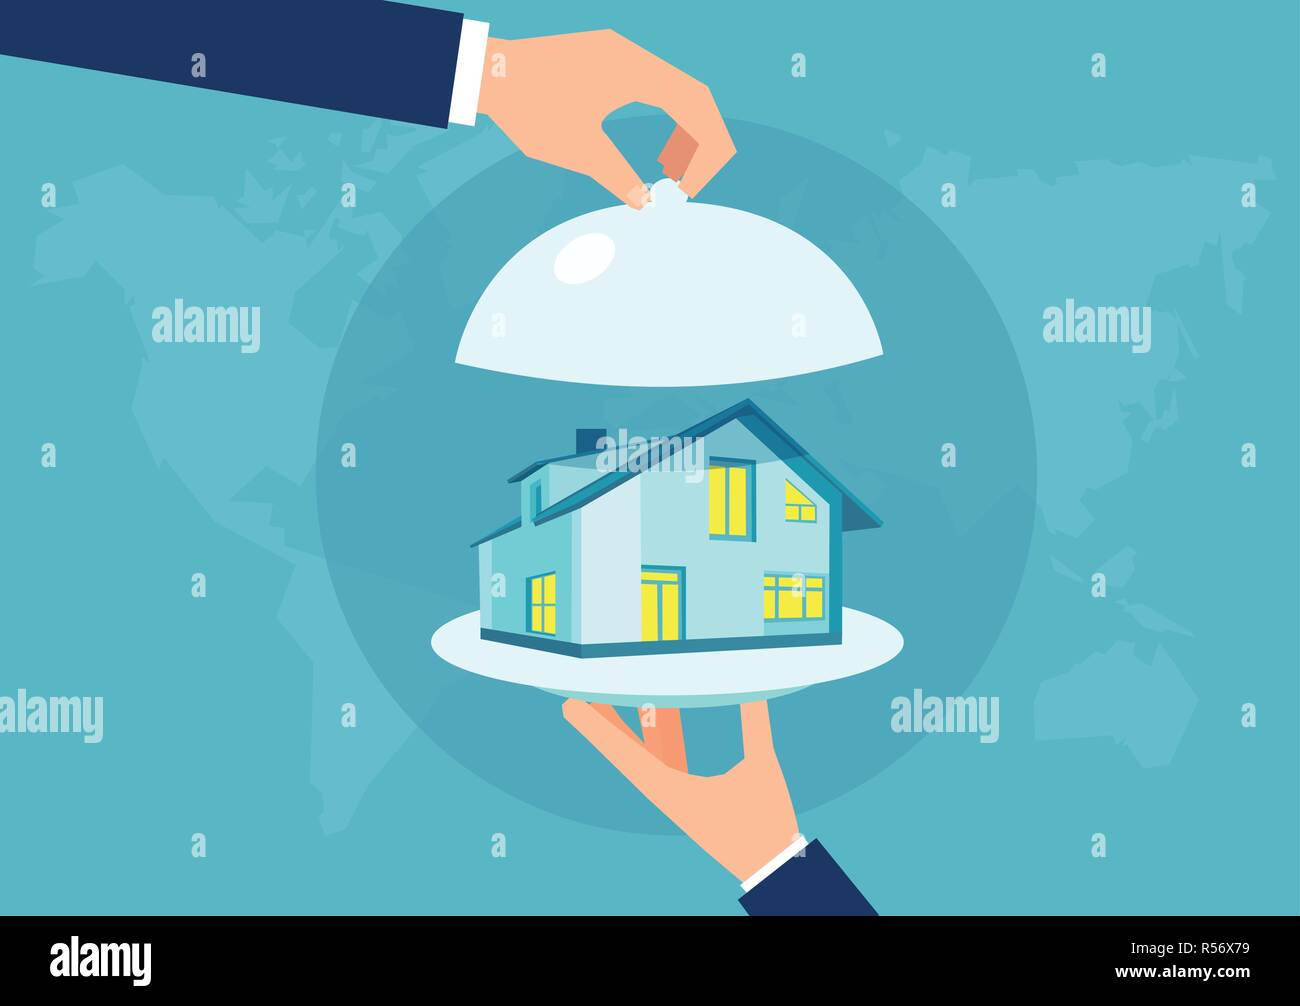 Vector of a hand holding a house model on a platter. Presenting a new home concept. Stock Vector